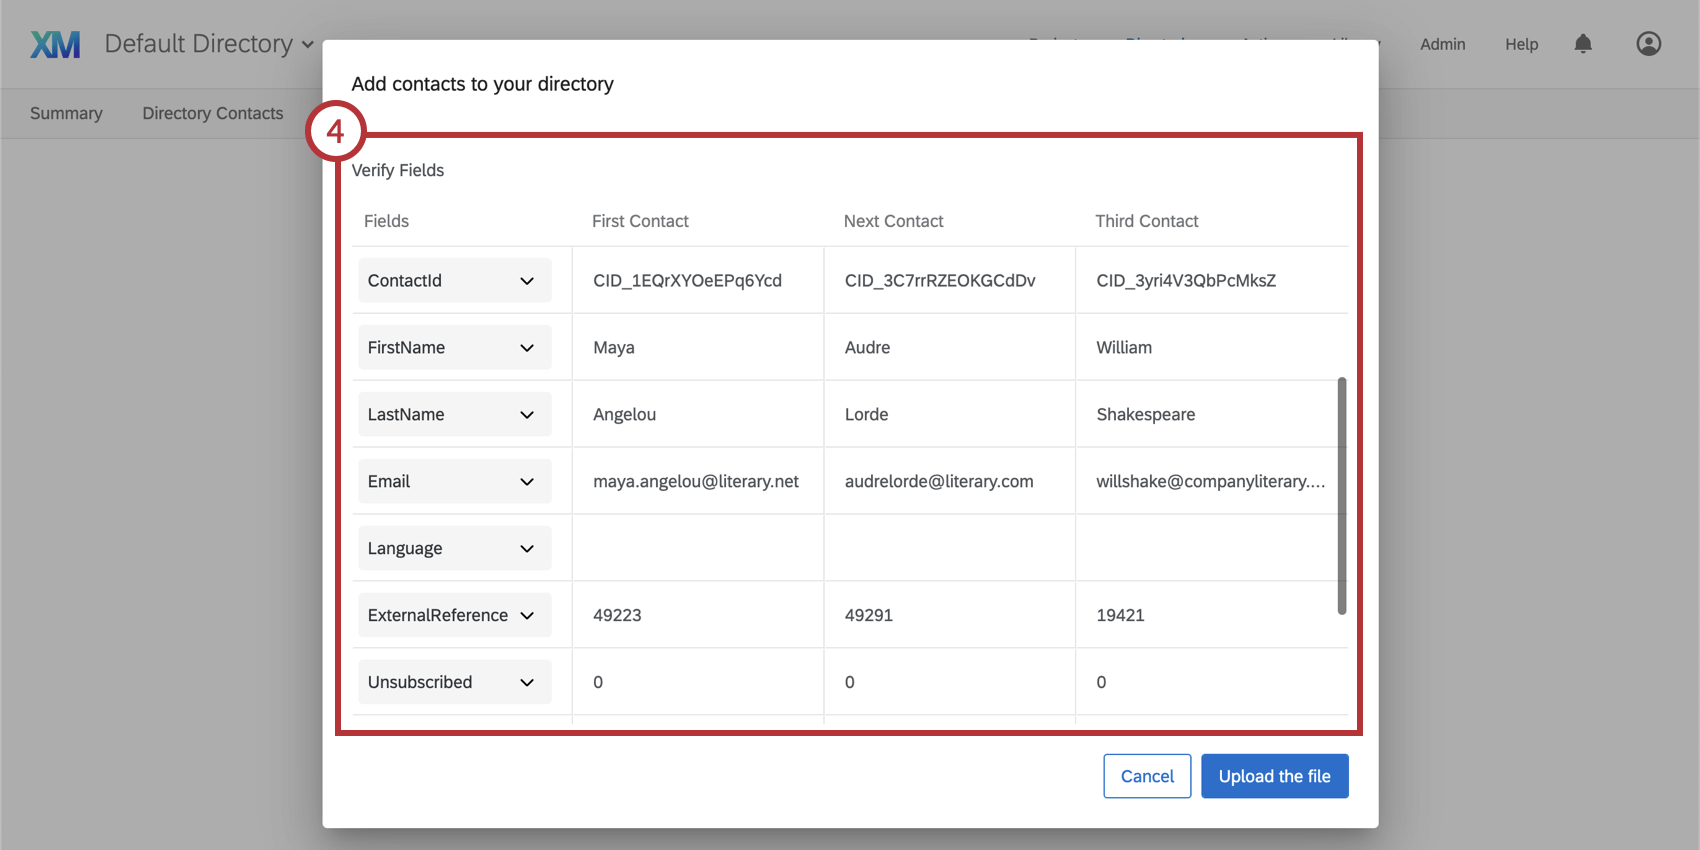 Verify fields section in the add contacts window